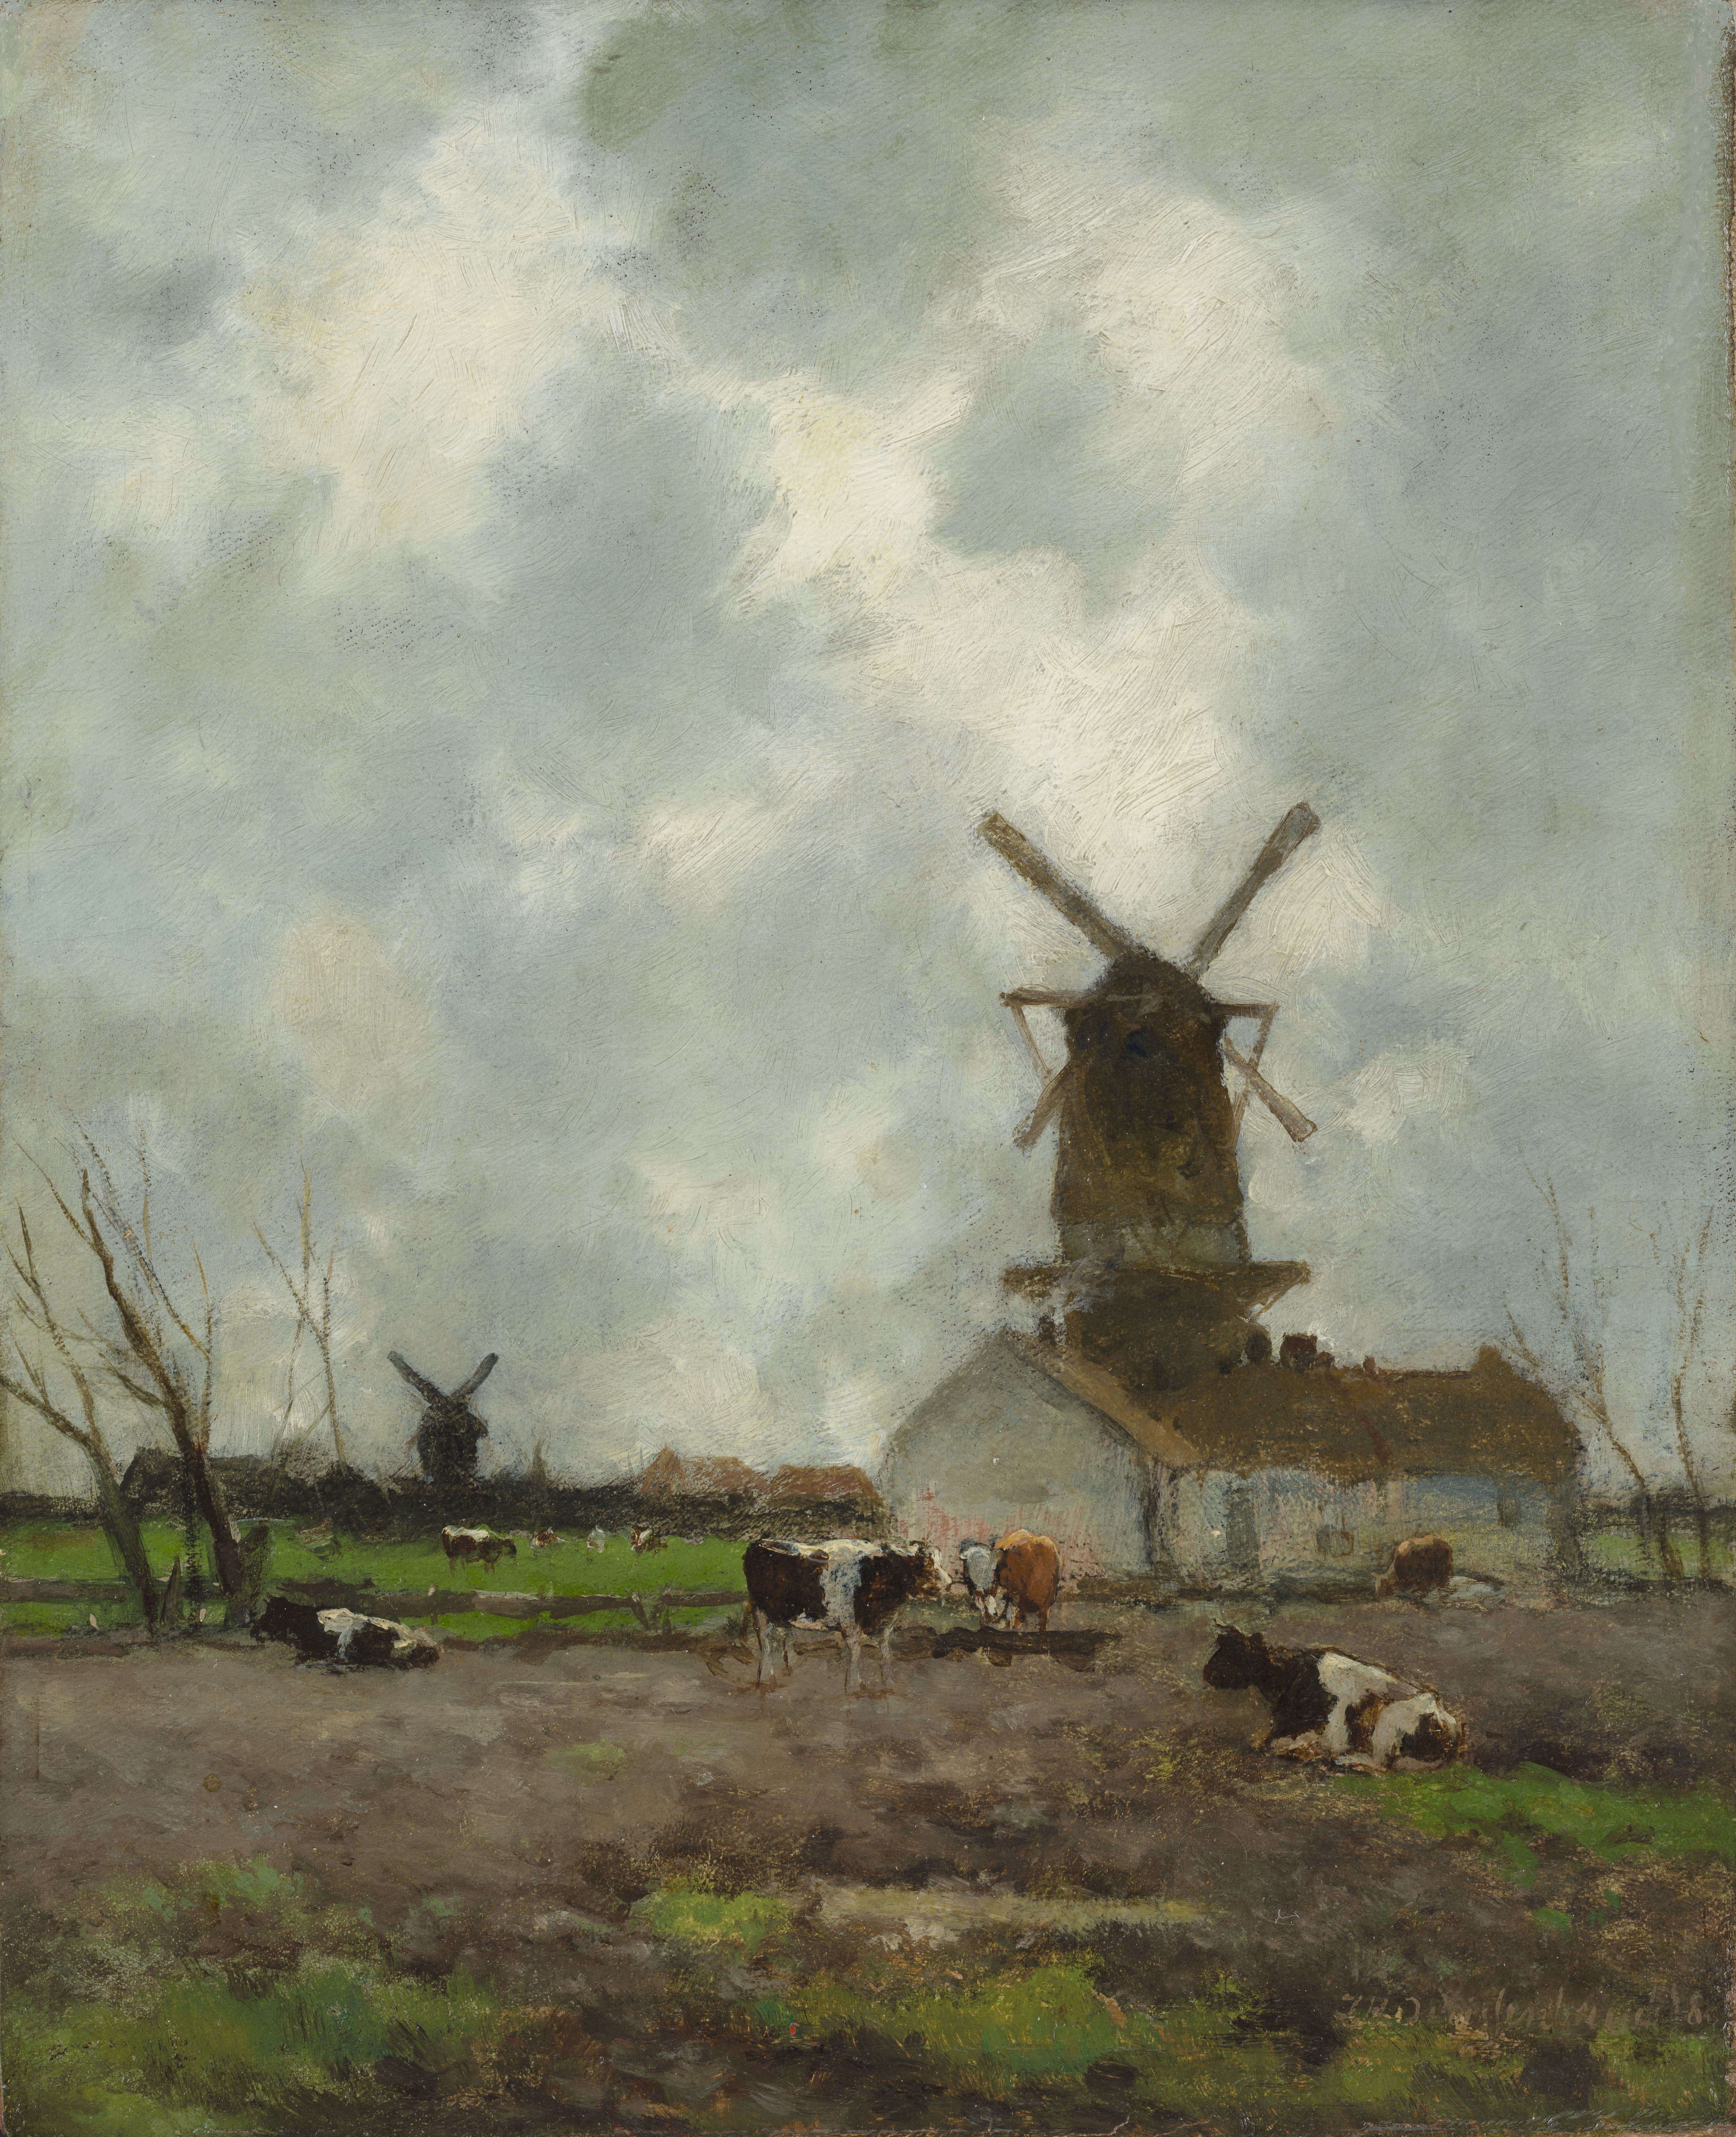 J.H. Weissenbruch | A Dutch landscape with windmills and cows | Kunsthandel Bies | Bies Gallery